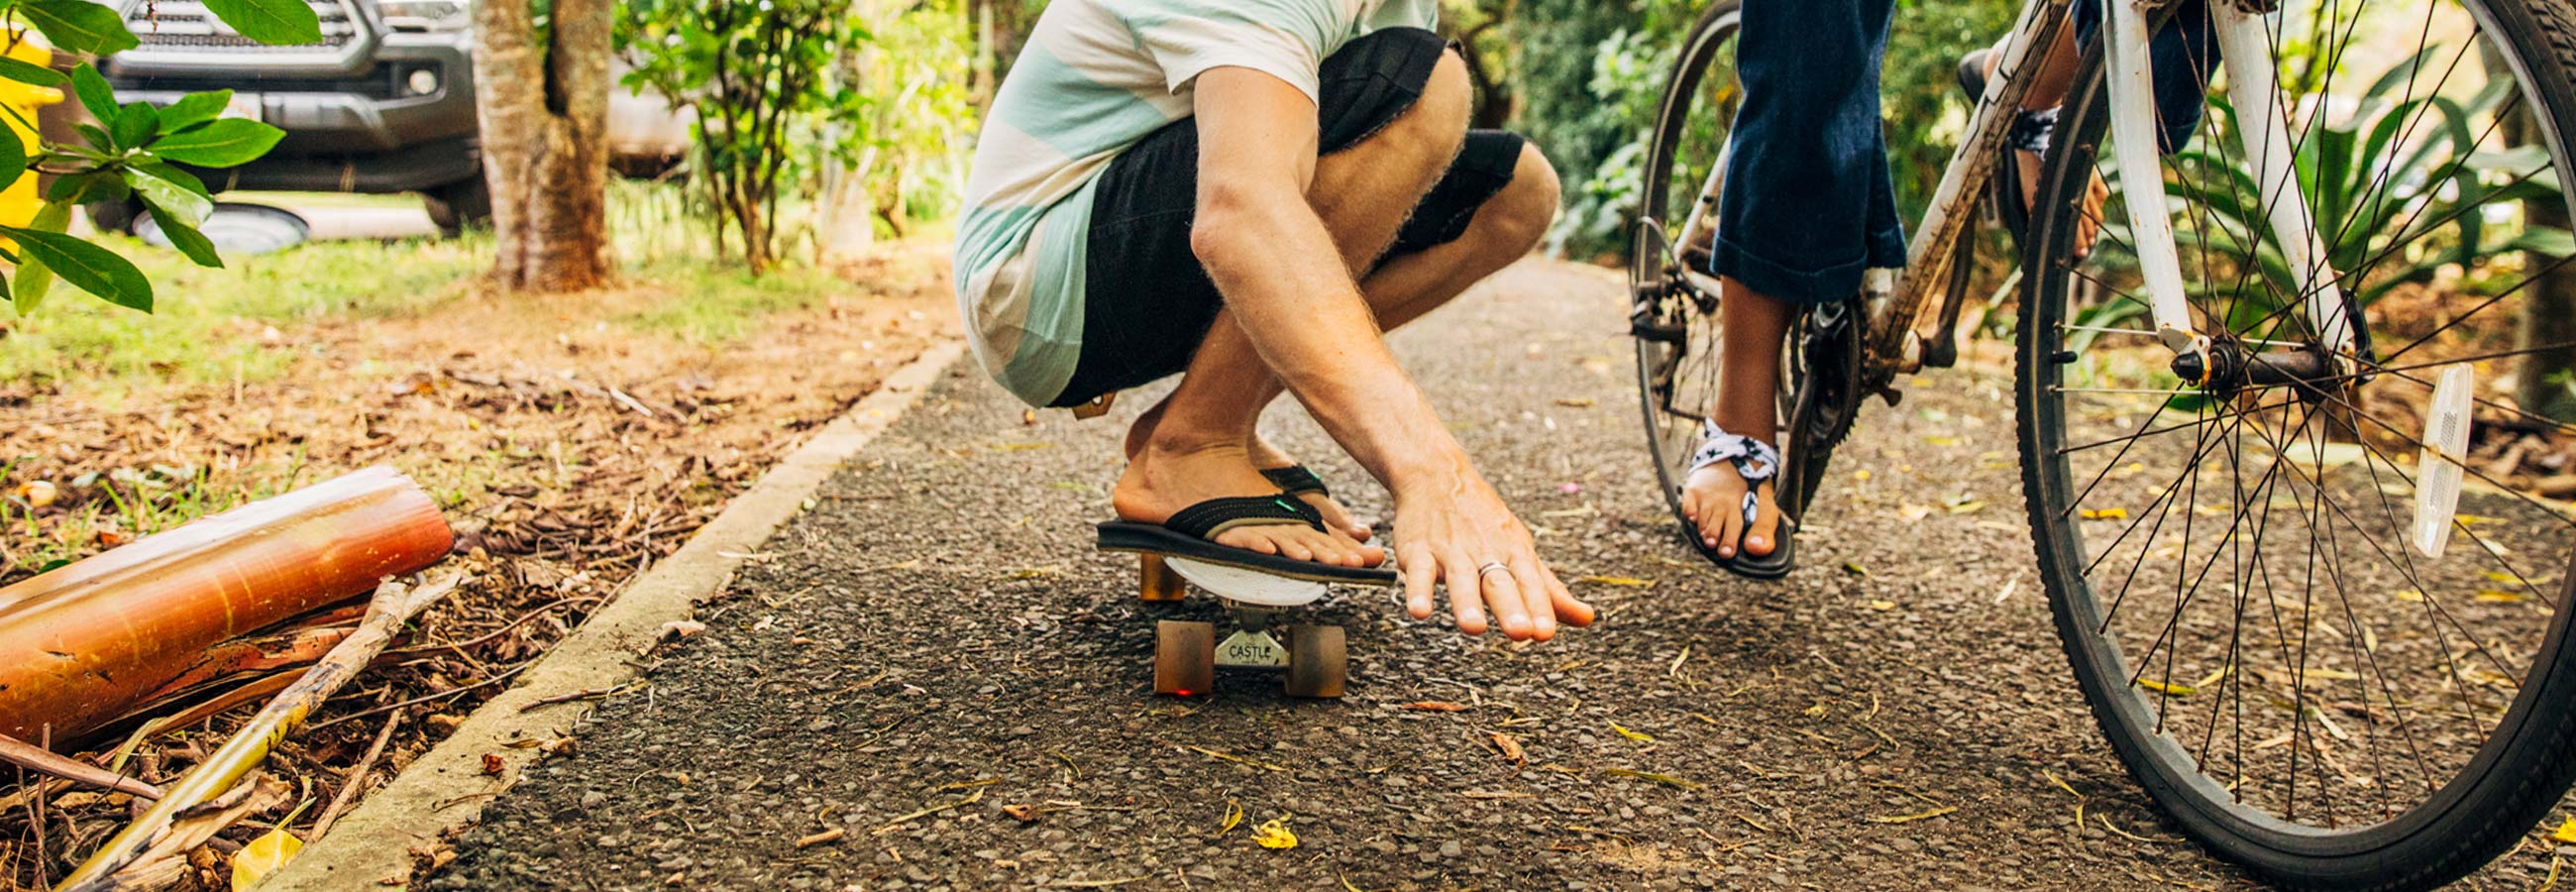 Ground level view of a man crouched low riding a skateboard next to a female riding a bicycle.